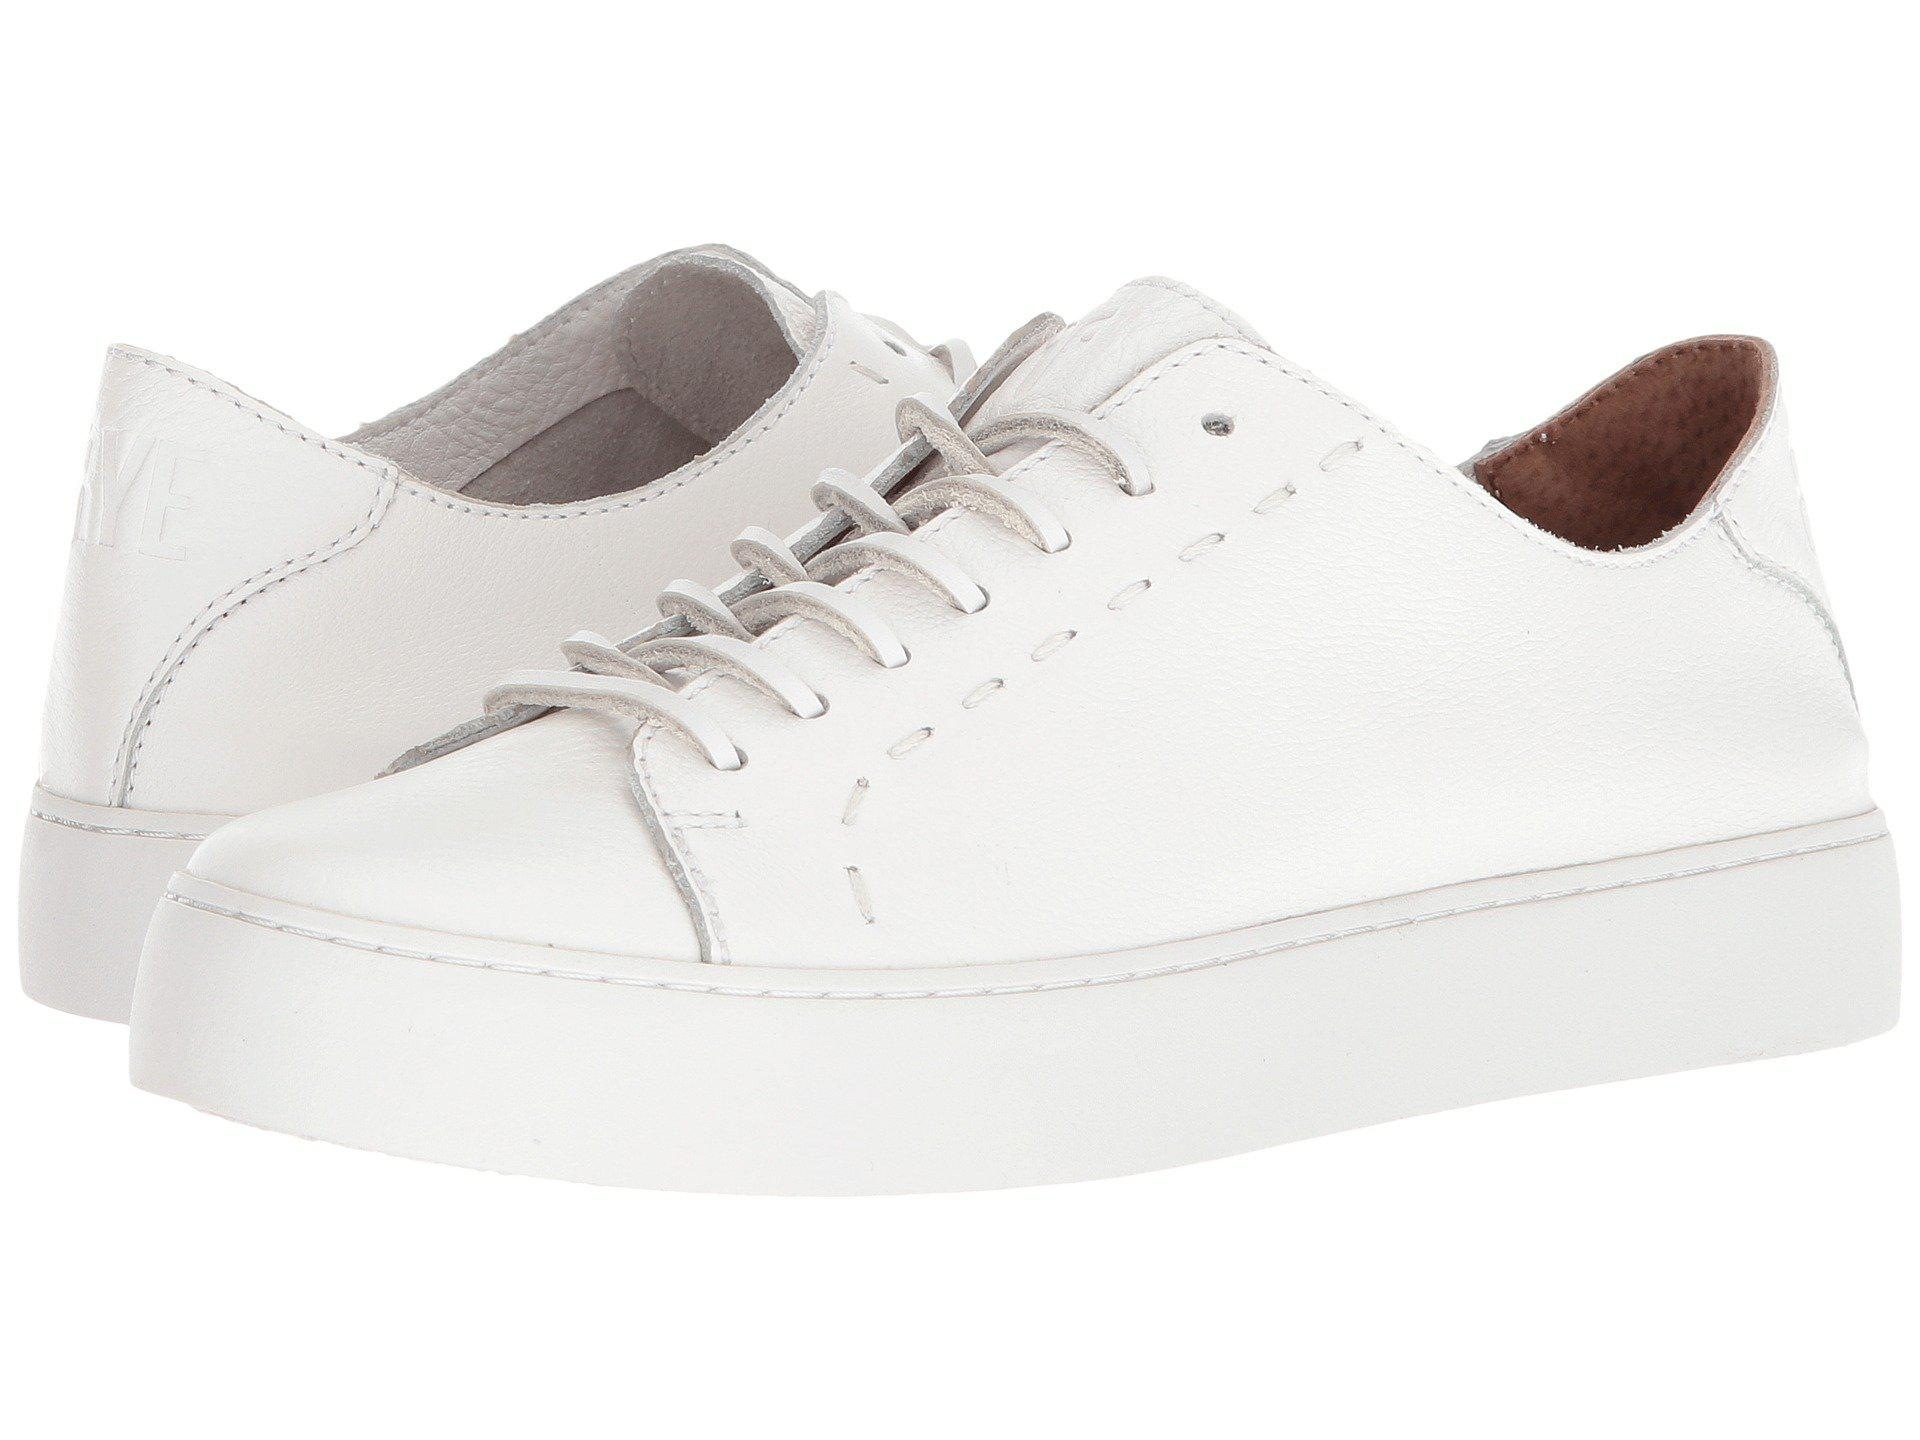 Frye Lena Low Lace-Up Sneakers e9Zwf